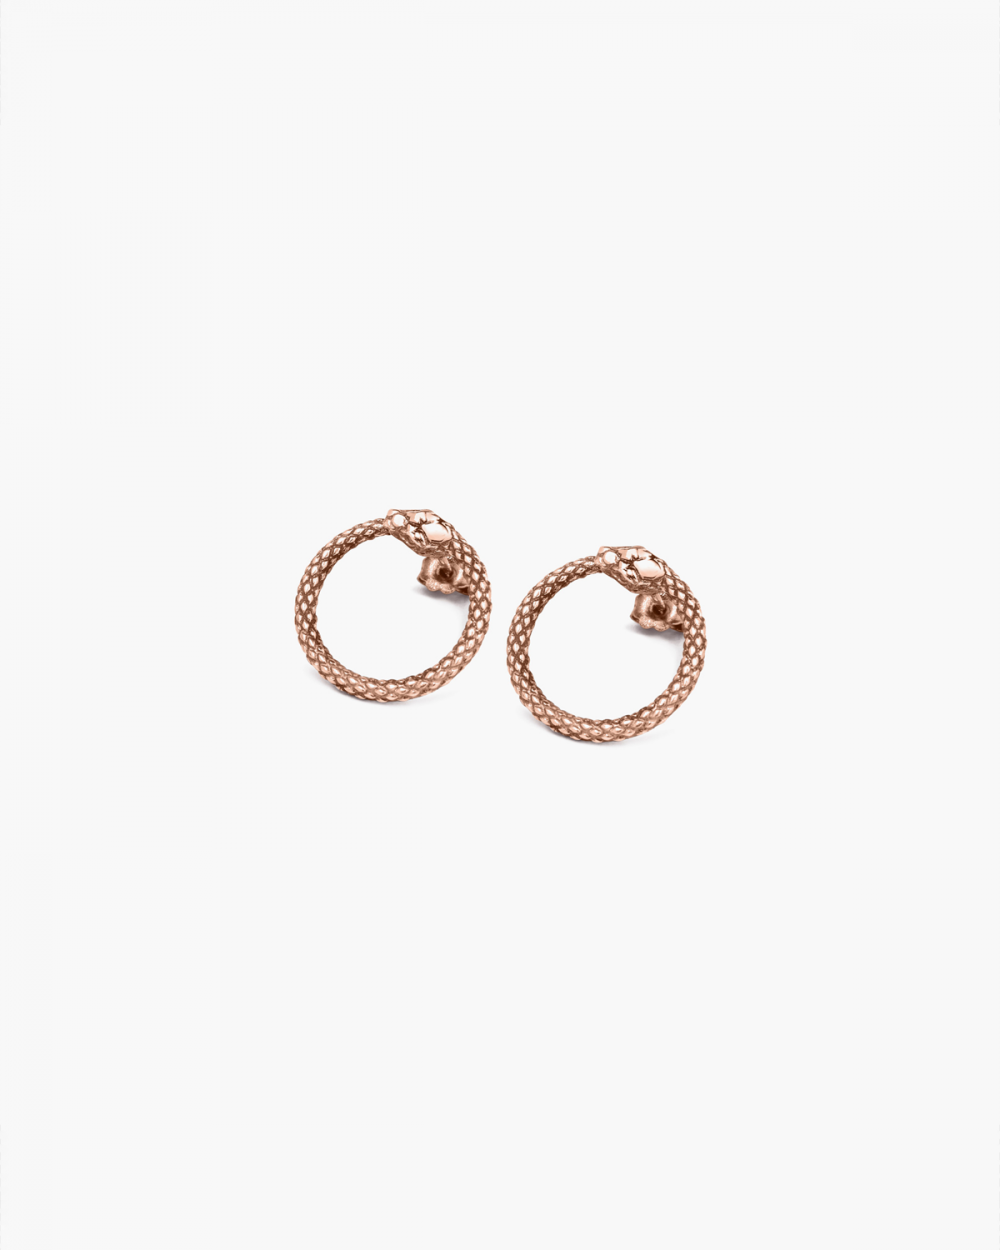 Earrings PINK GOLD OUROBOROS PAIR EARRINGS NOVE25